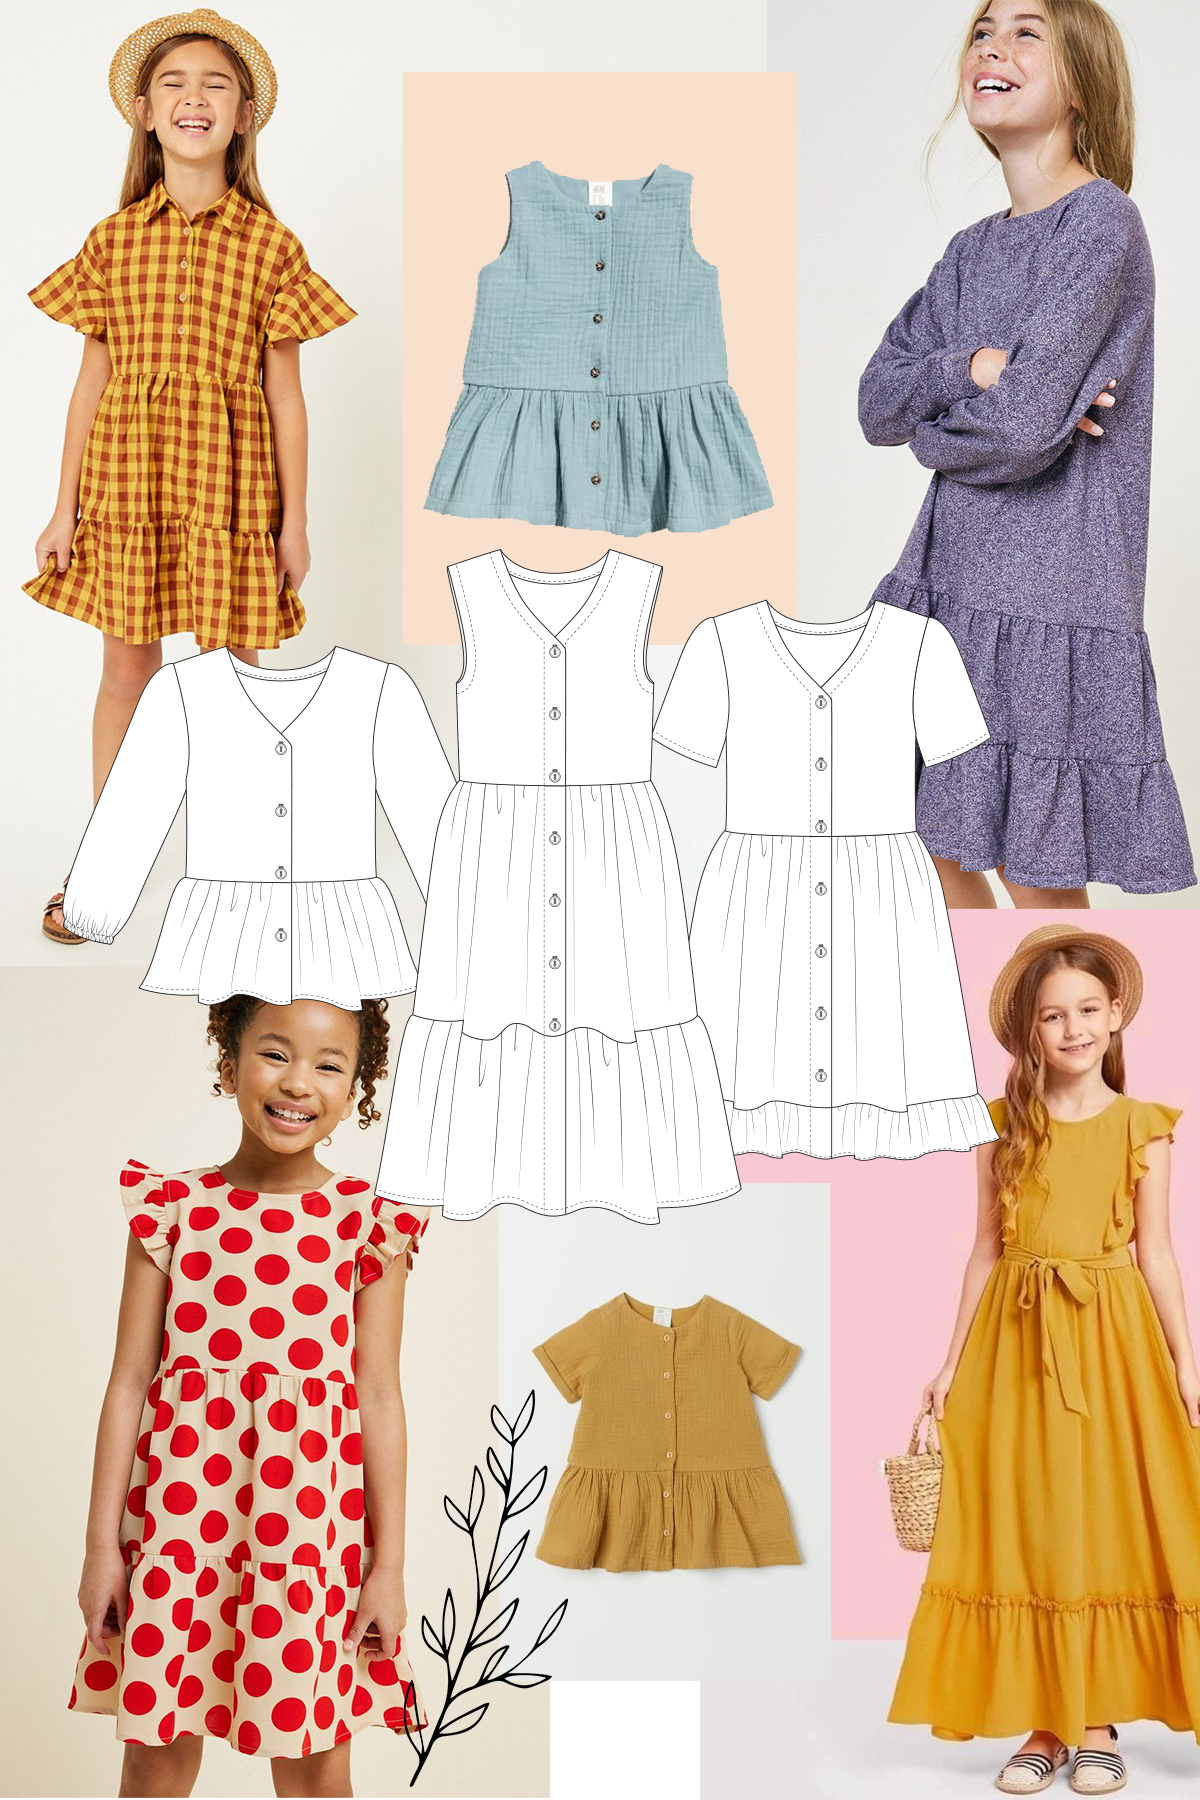 Add a tier to your Mini Darling Ranges to make a longer dress!